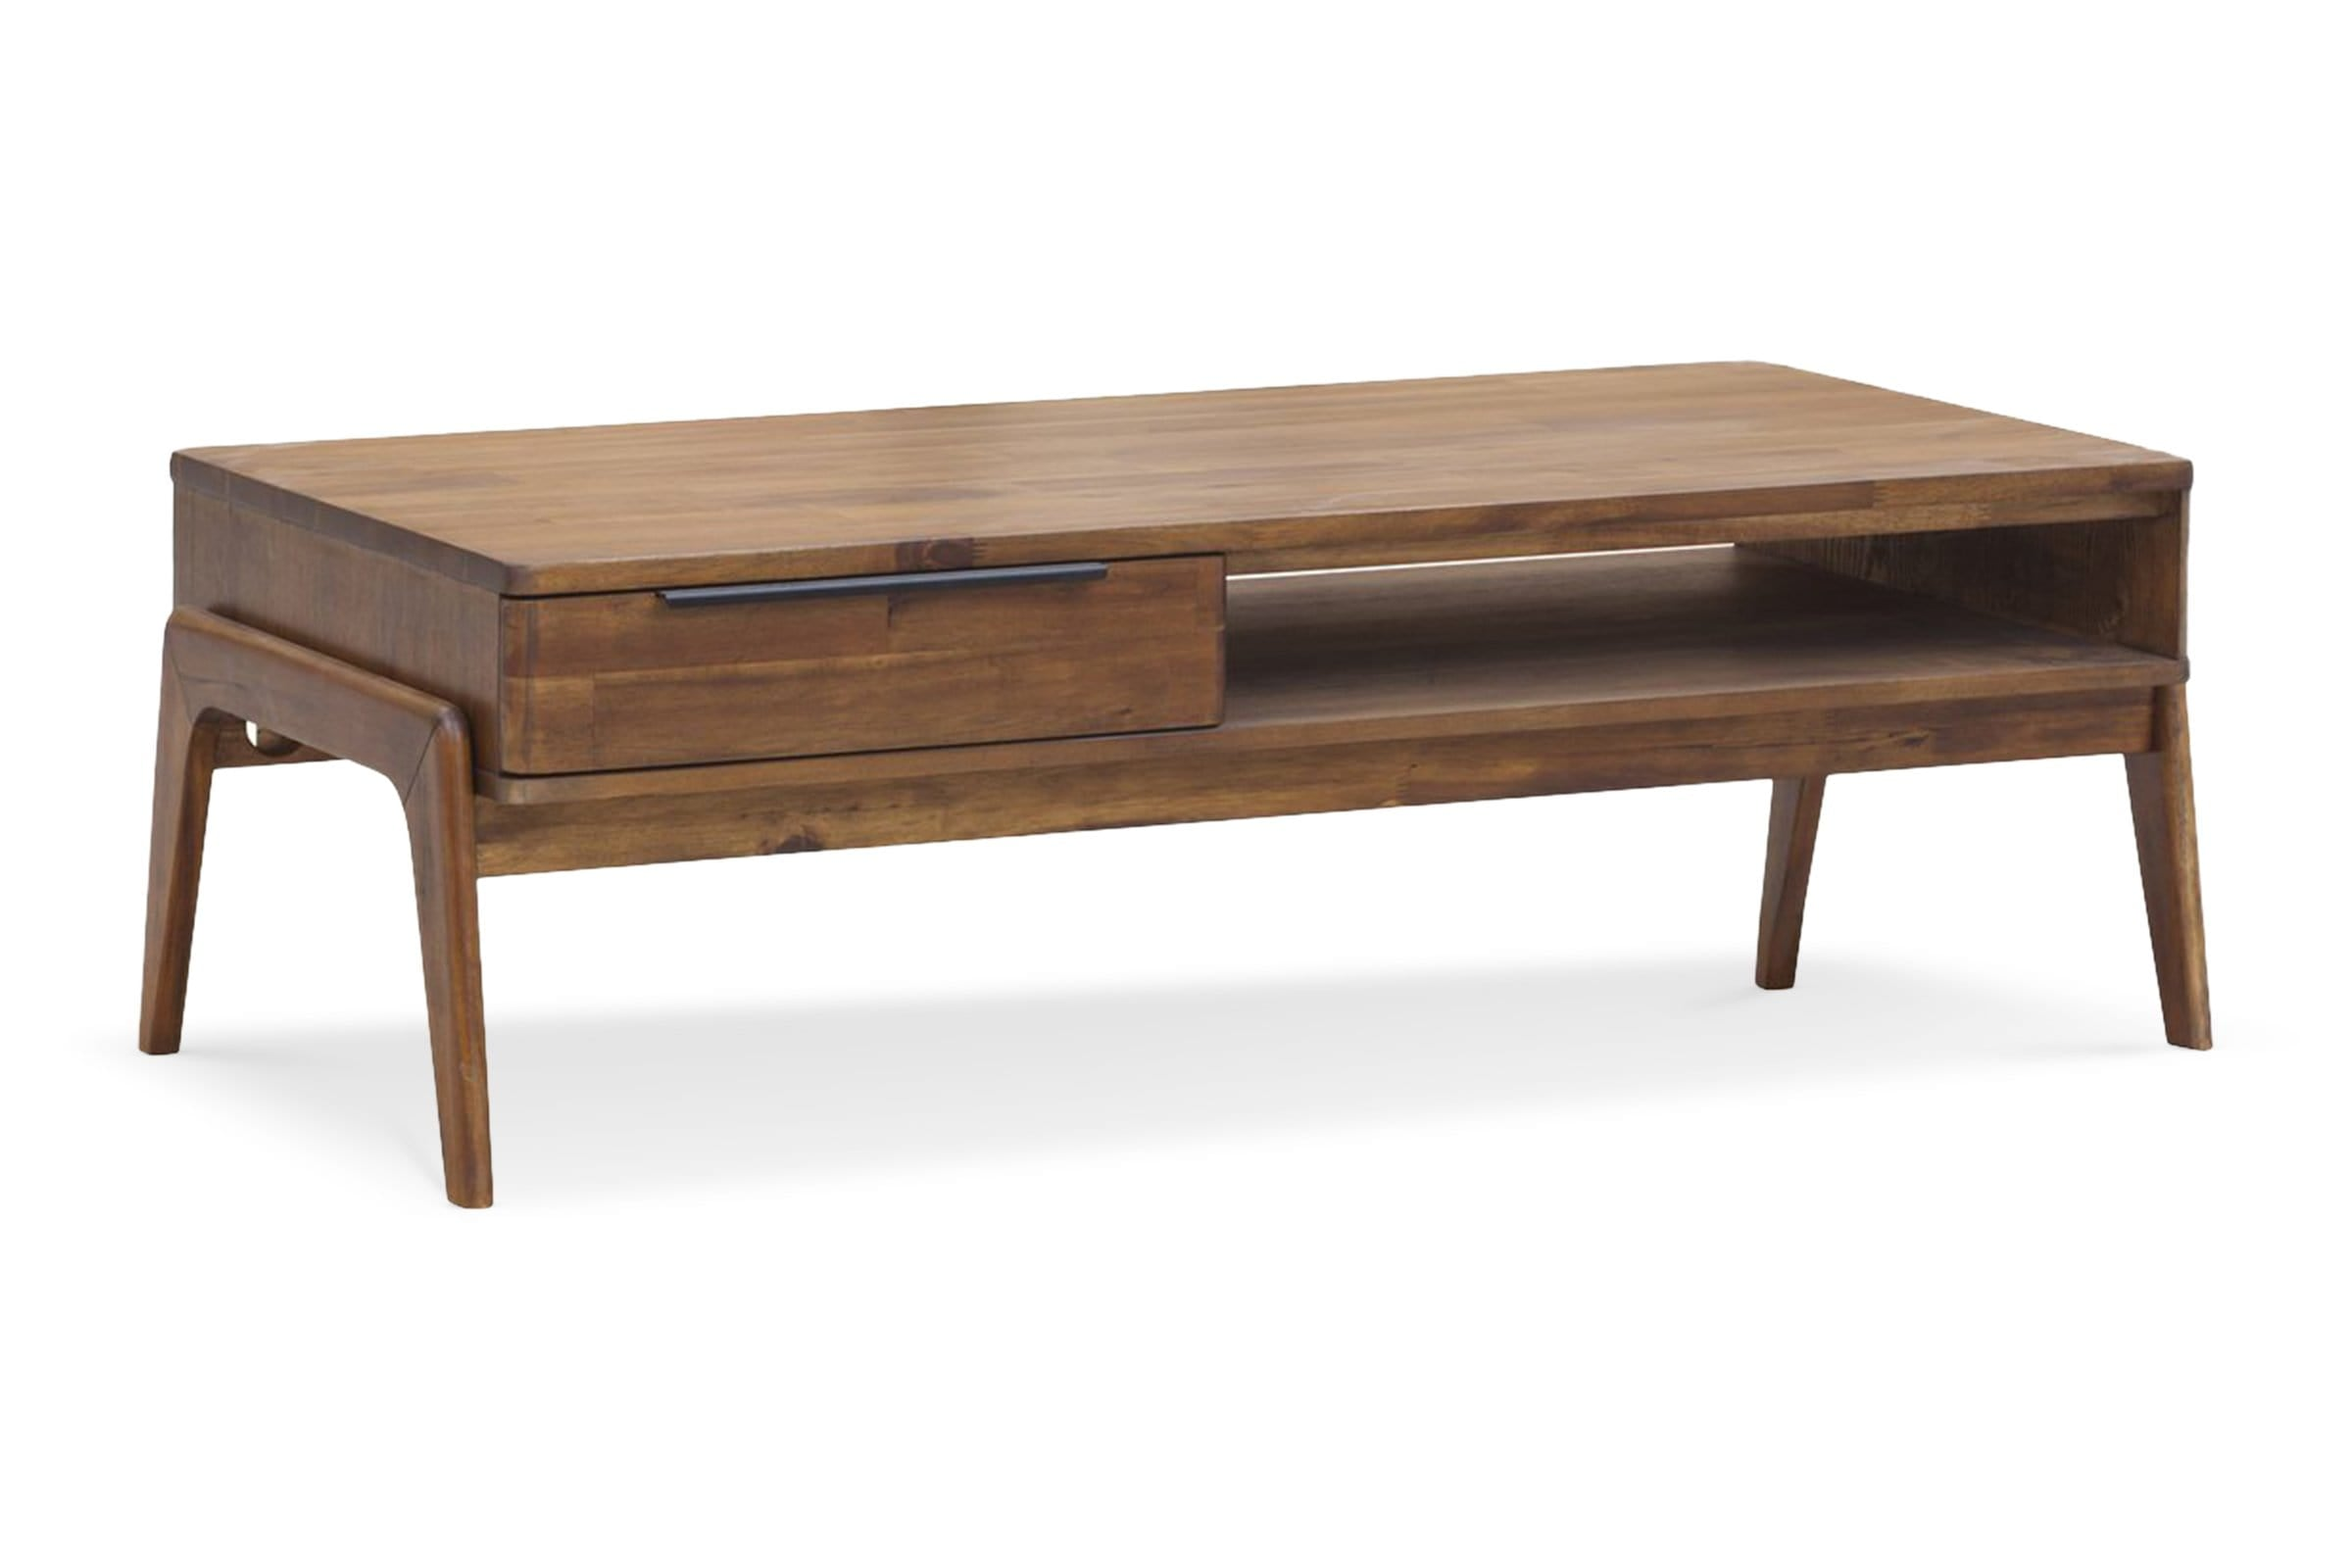 Aiken Coffee Table - Soild Wood - Mid-Century Modern - Living Room Furniture sold by Apt2B